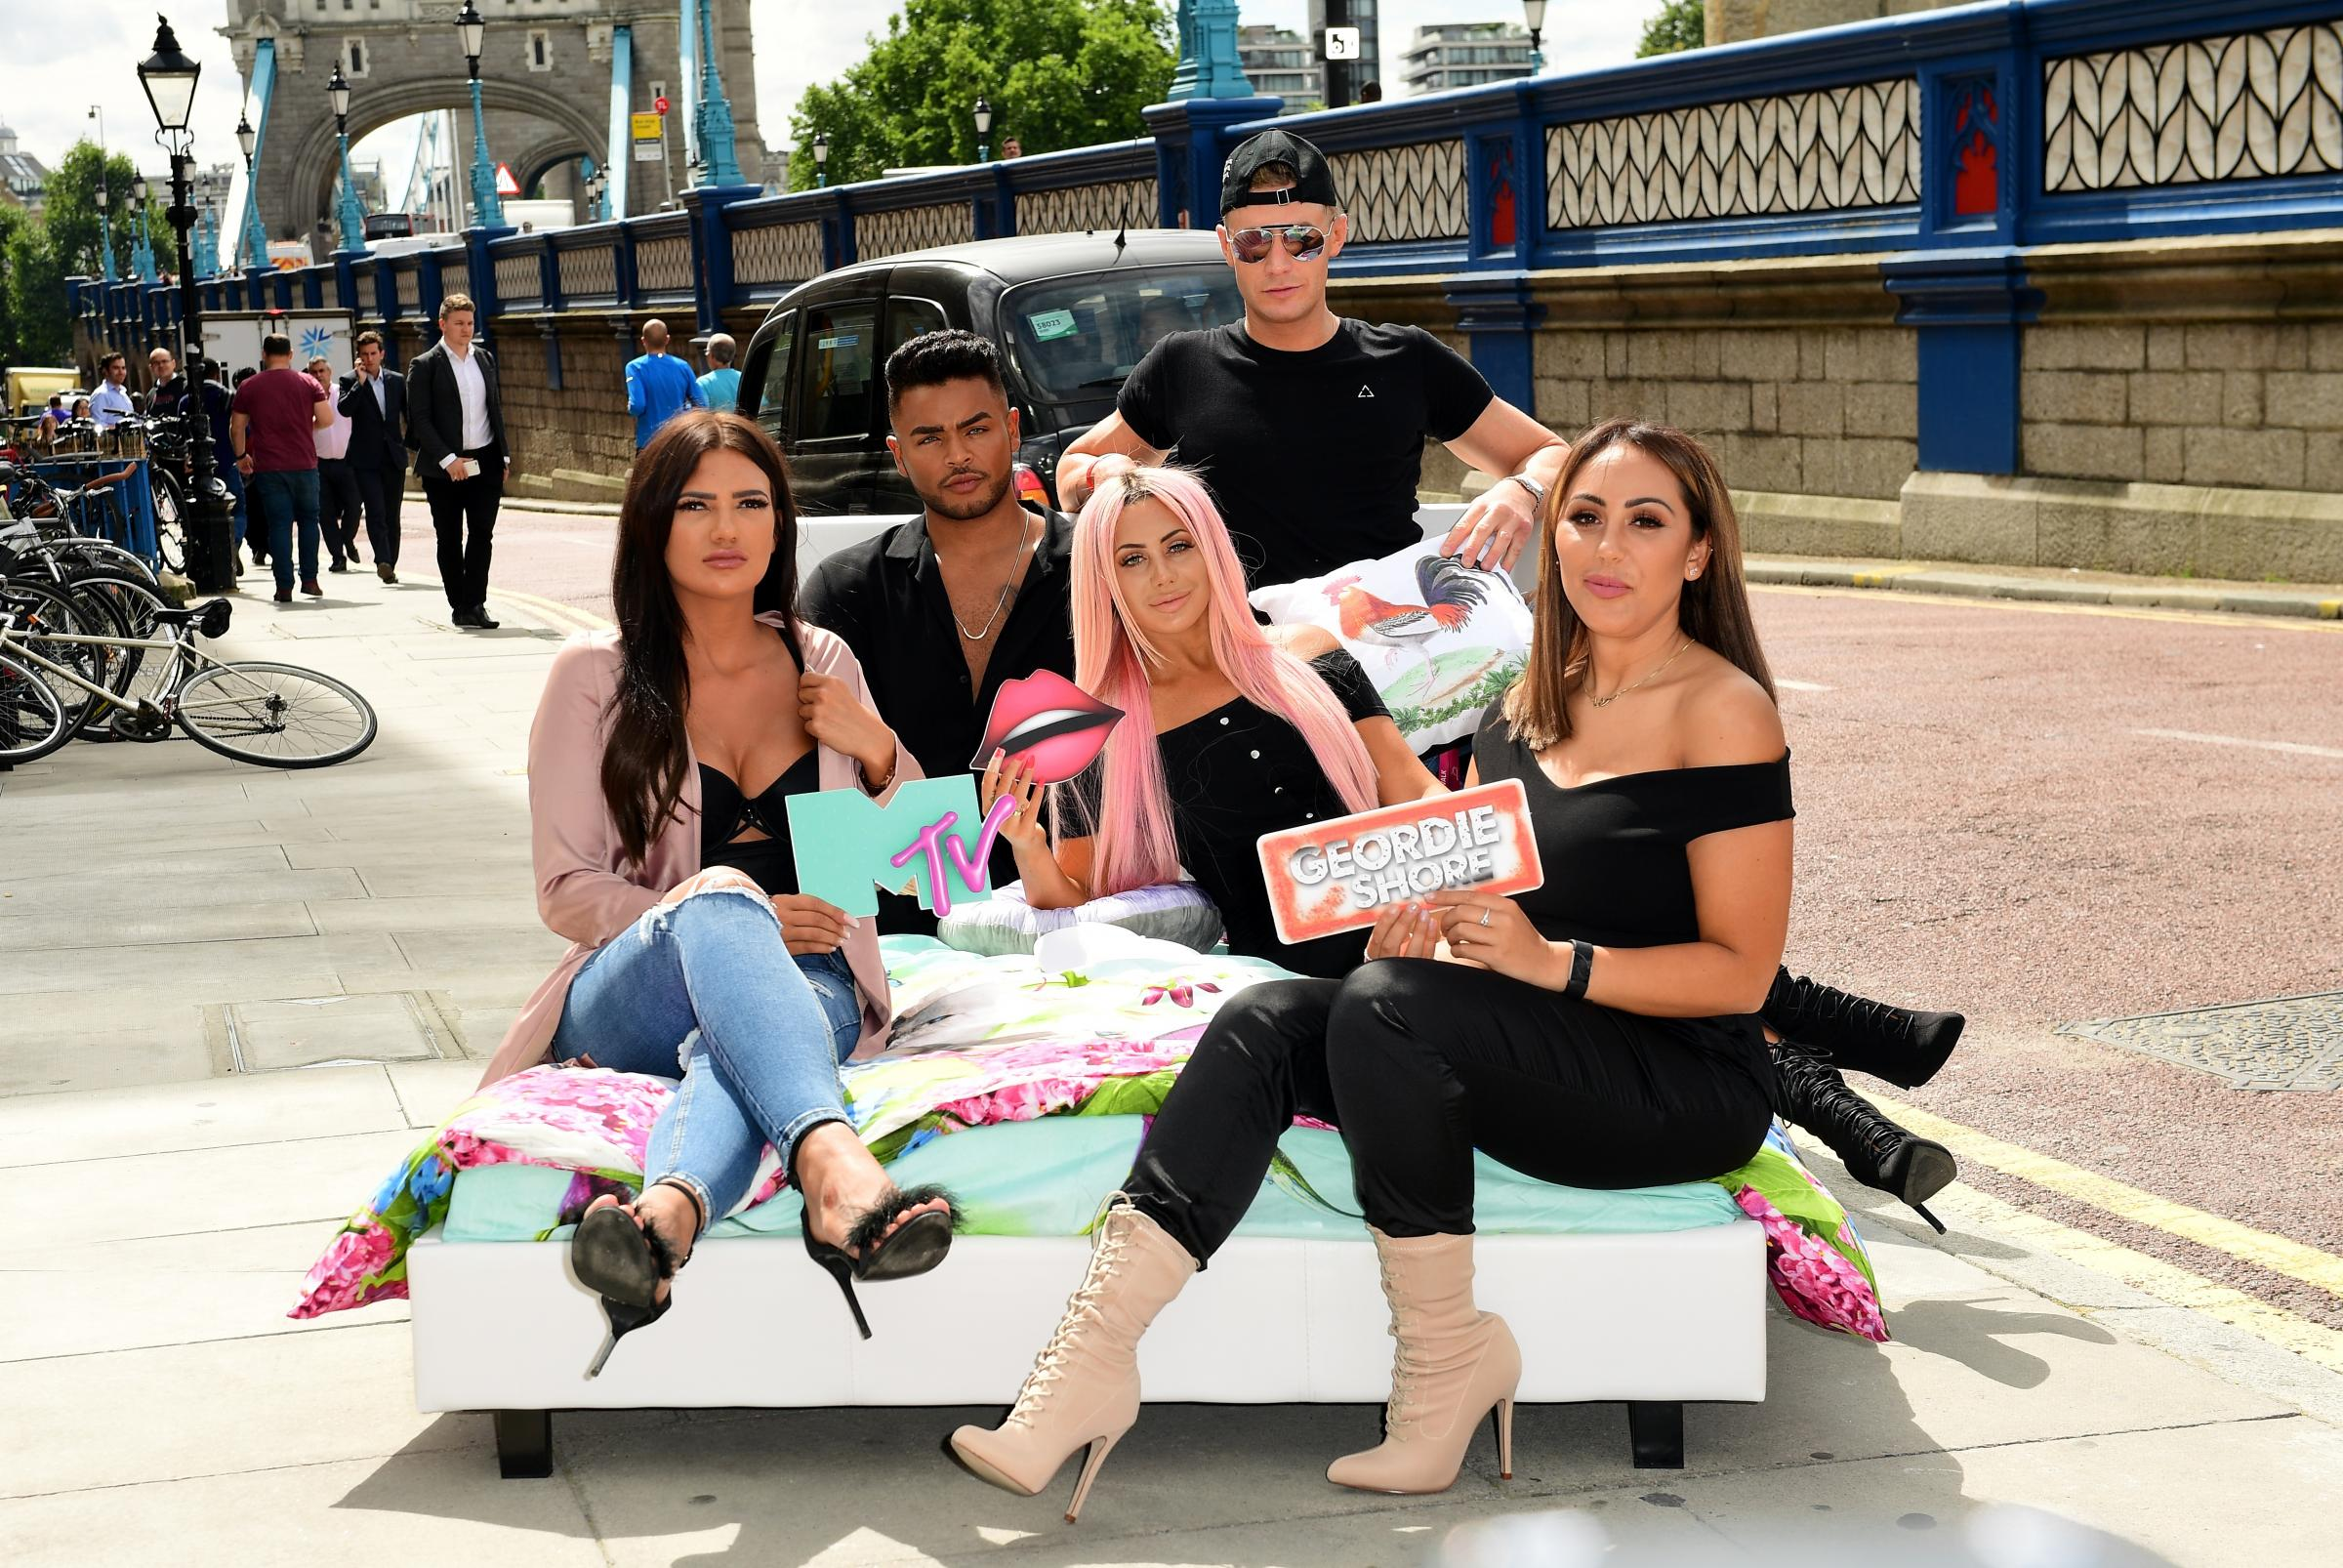 GEORDIE SHORE: From left: Abbie Holborn, Nathan Henry, Chloe Ferry, Scott Timlin and Sophie Kasaei from the launch of series 15  Photo: IAN WEST/PA WIRE